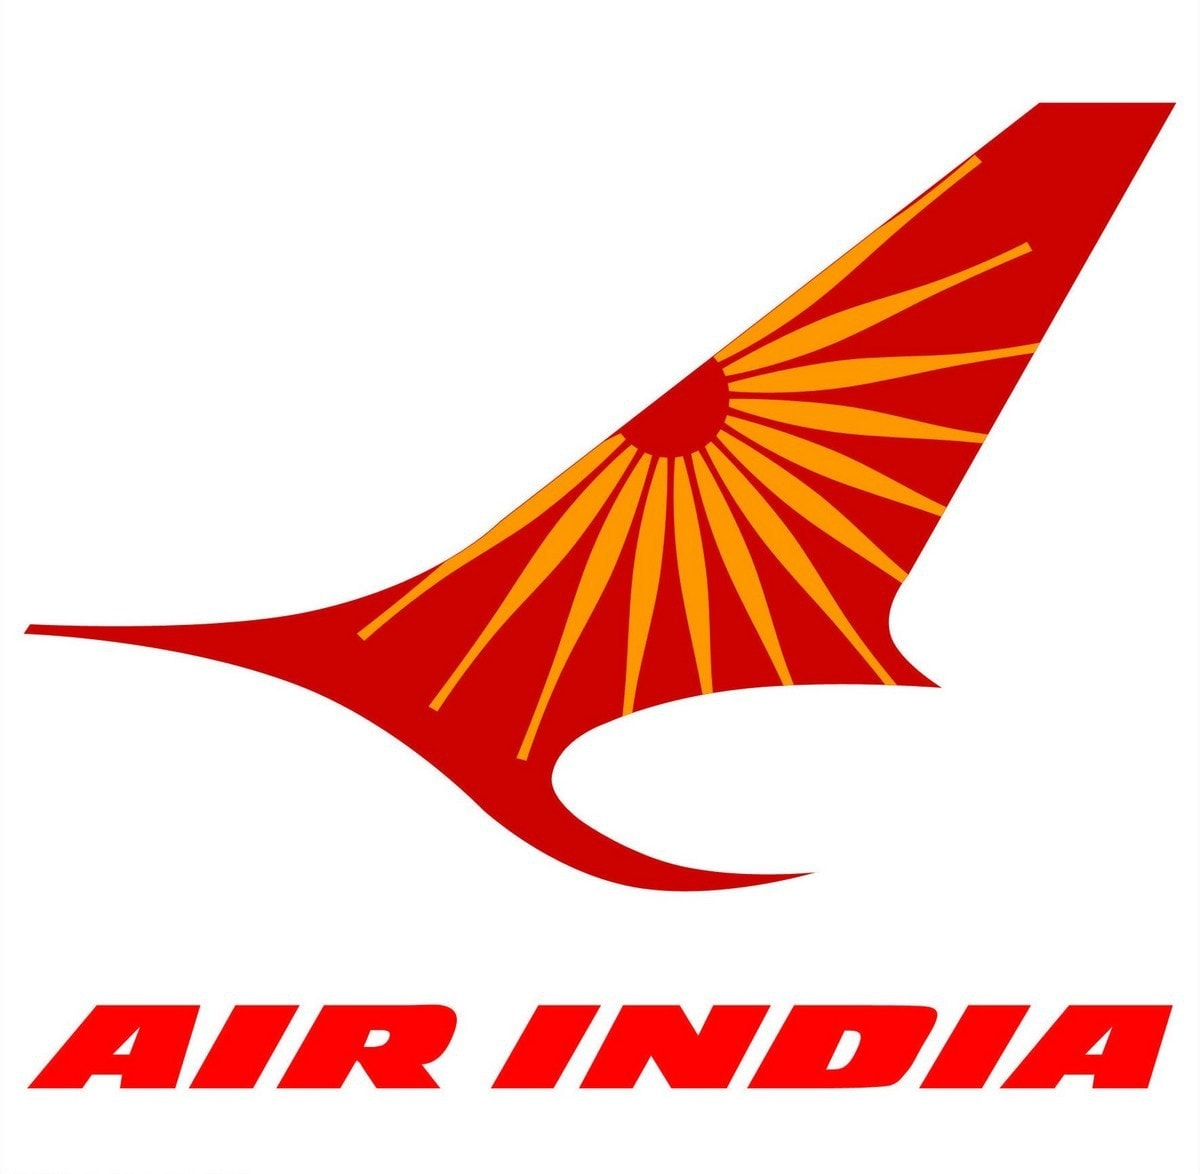 Marketing mix of Air India – Air India marketing mix